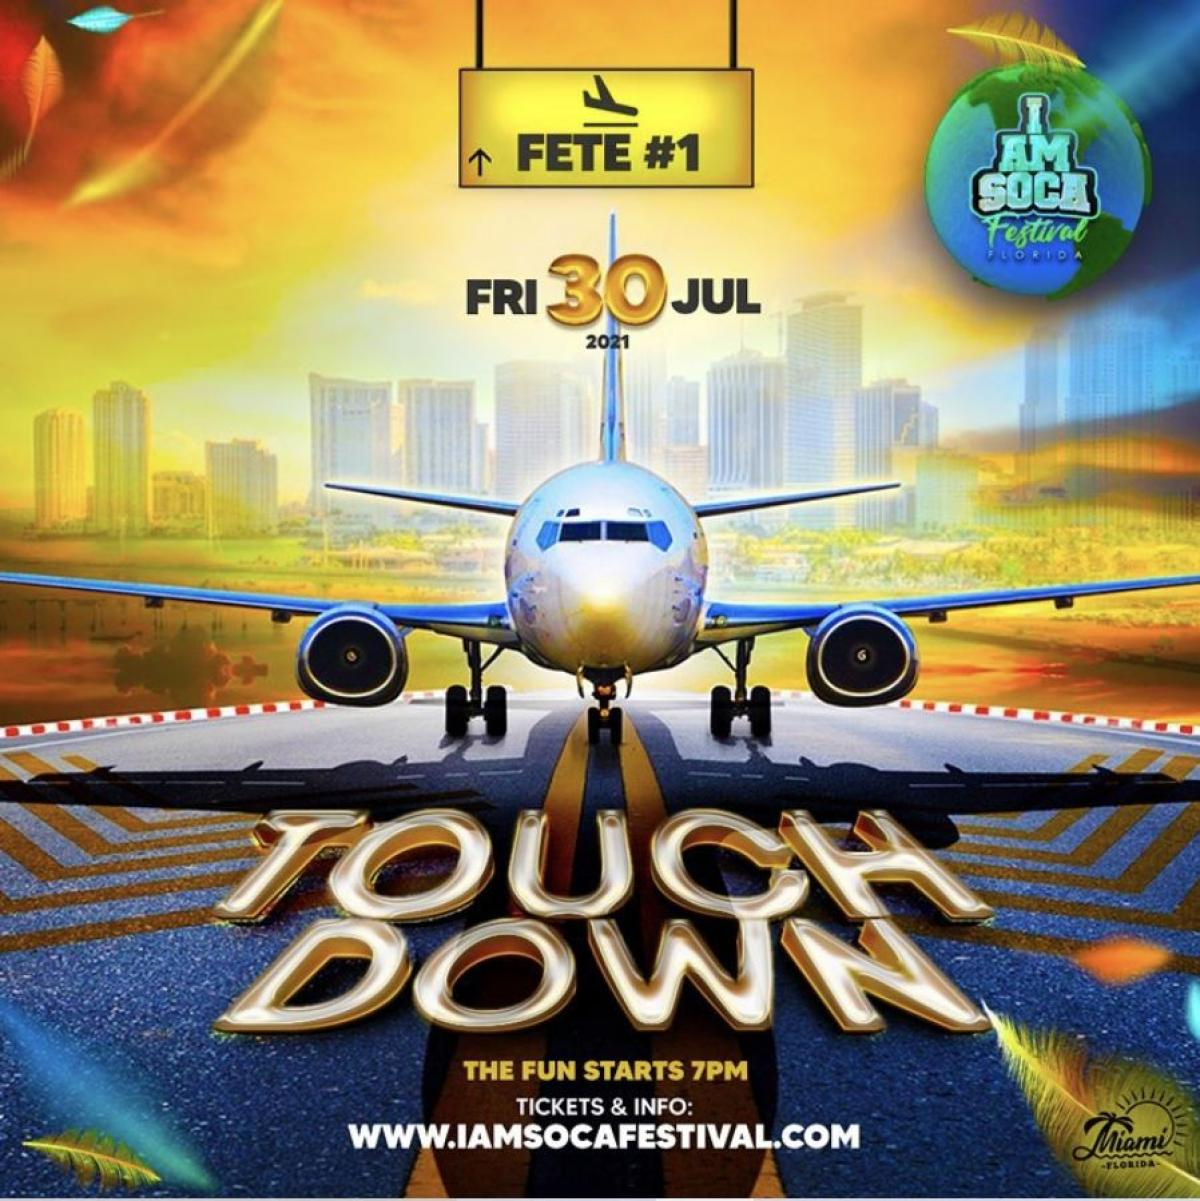 Touch Down flyer or graphic.